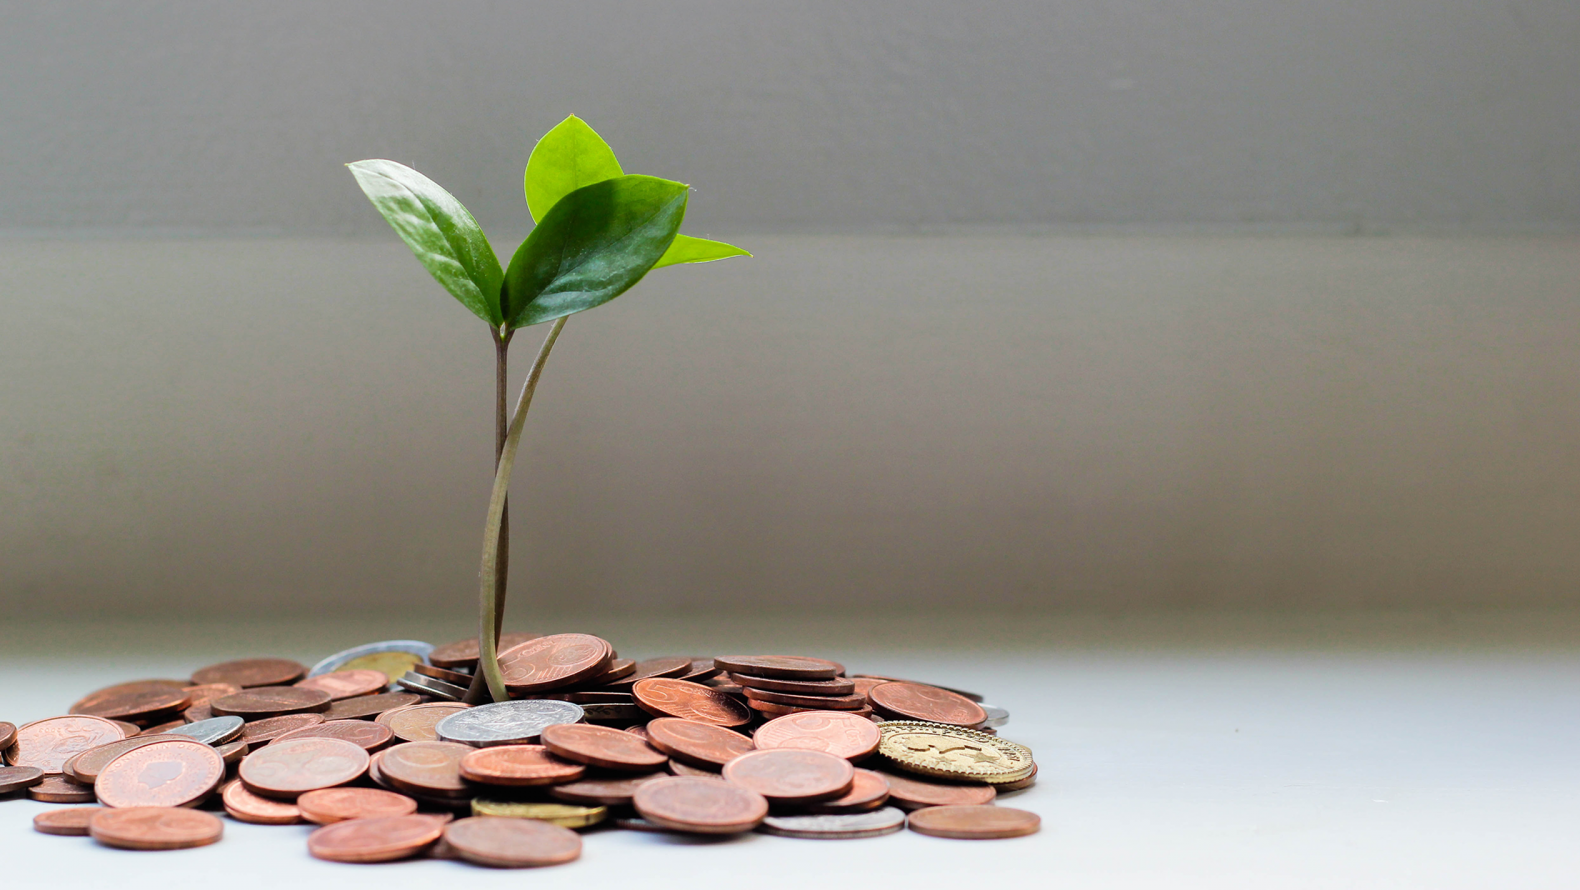 A plant growing in money. Photo: Micheile Henderson for Unsplash.